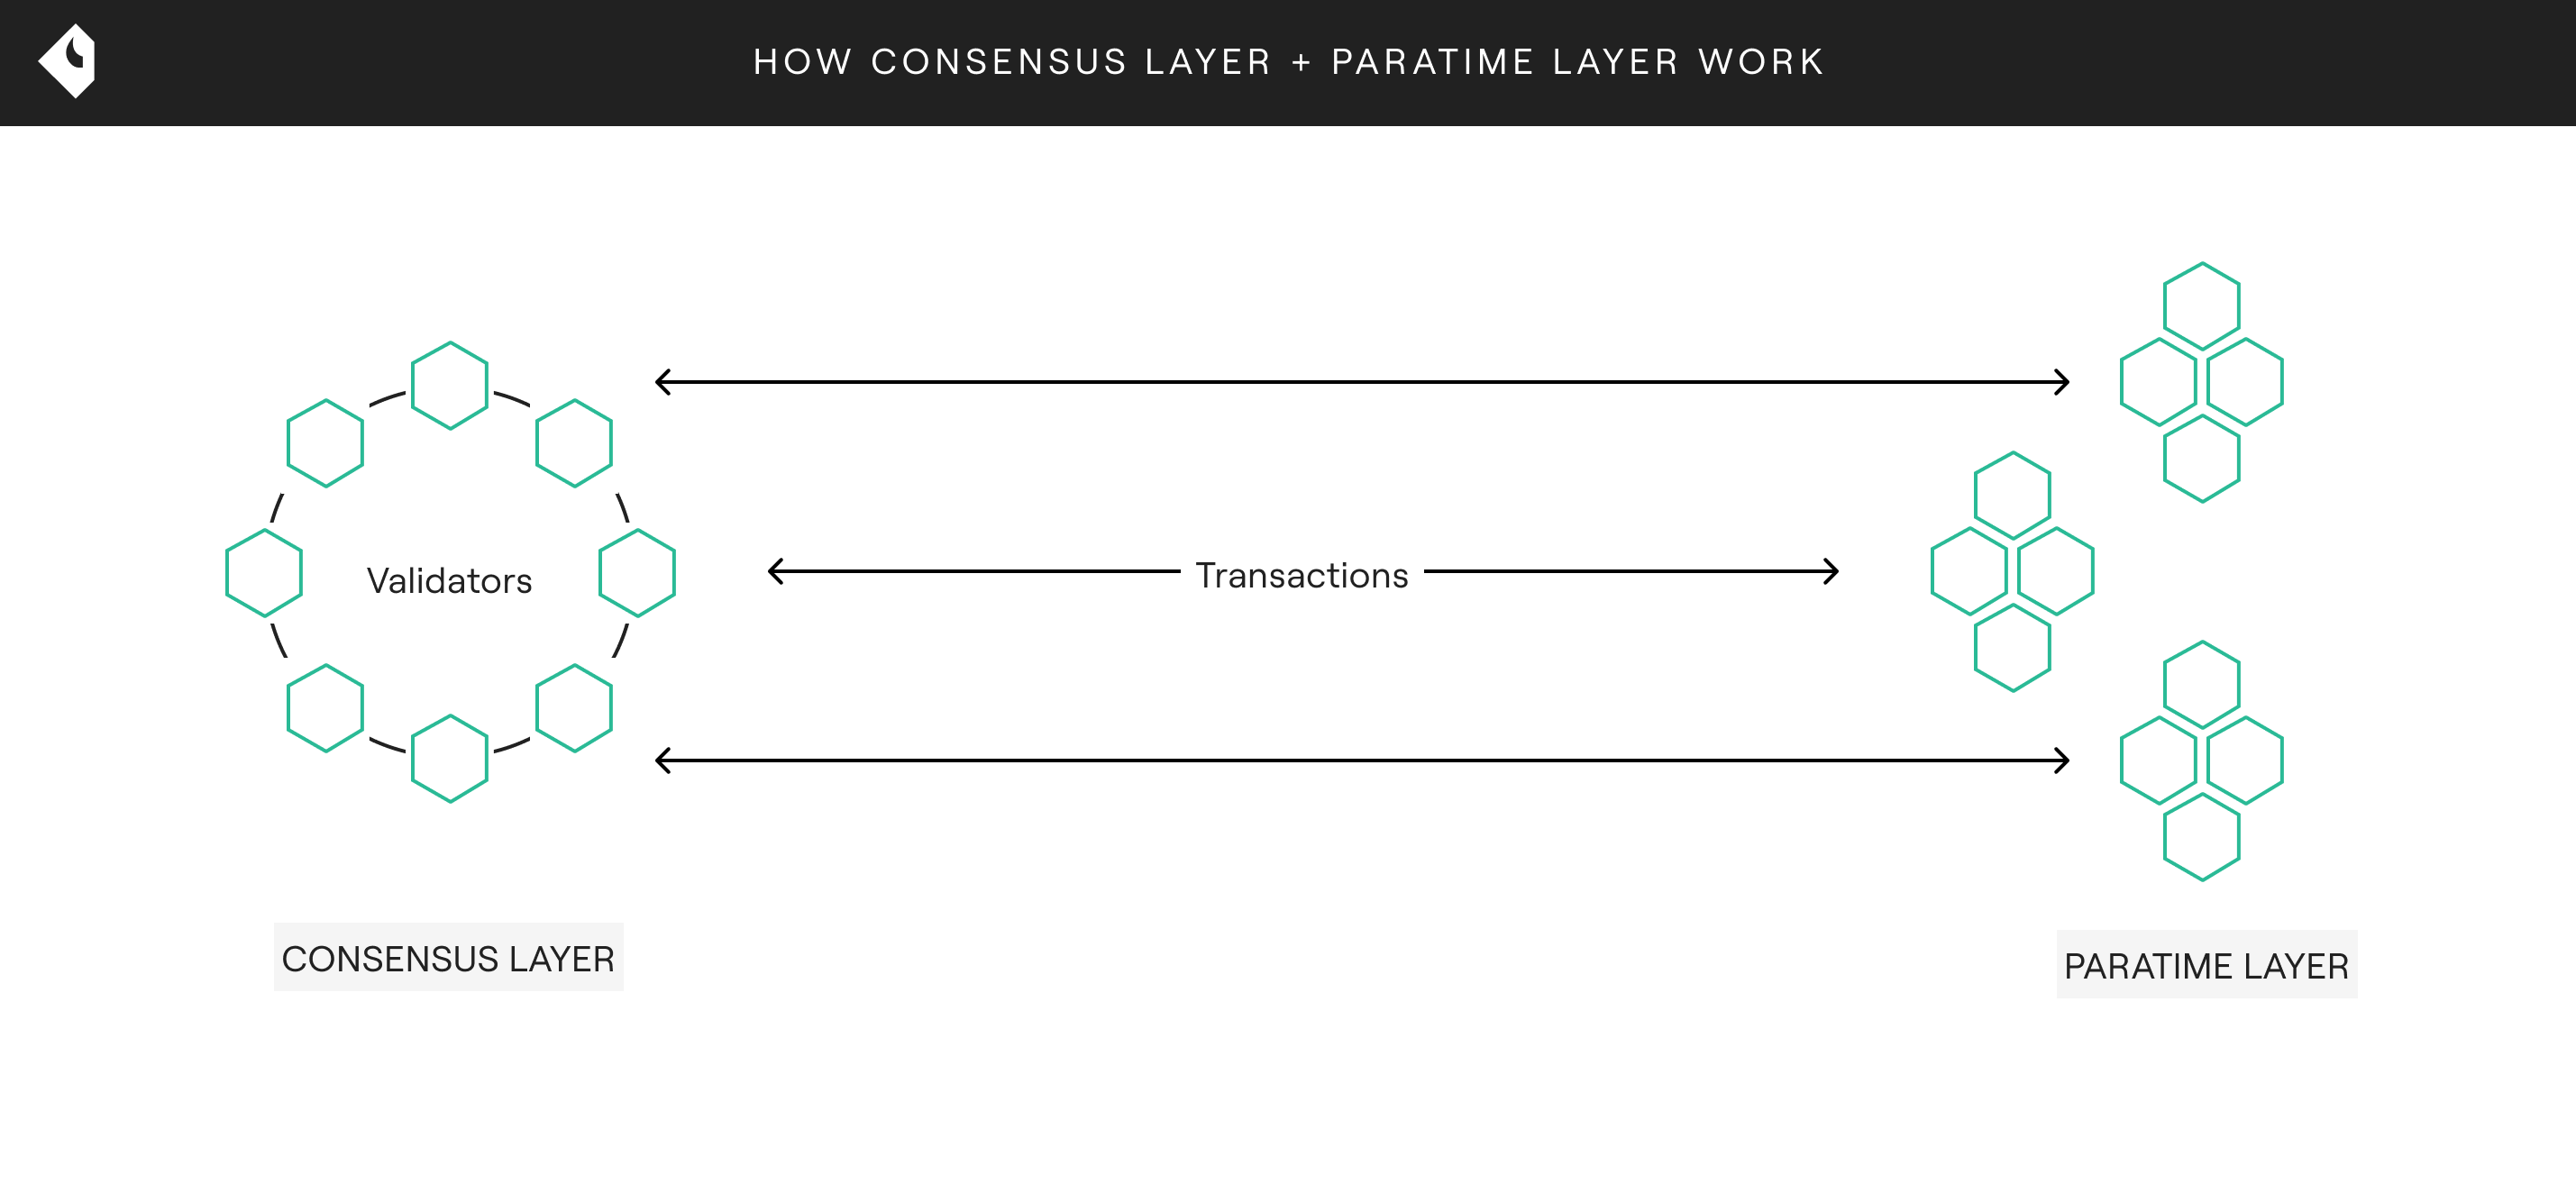 Oasis - How Consensus Layer + Paratime Layer Work